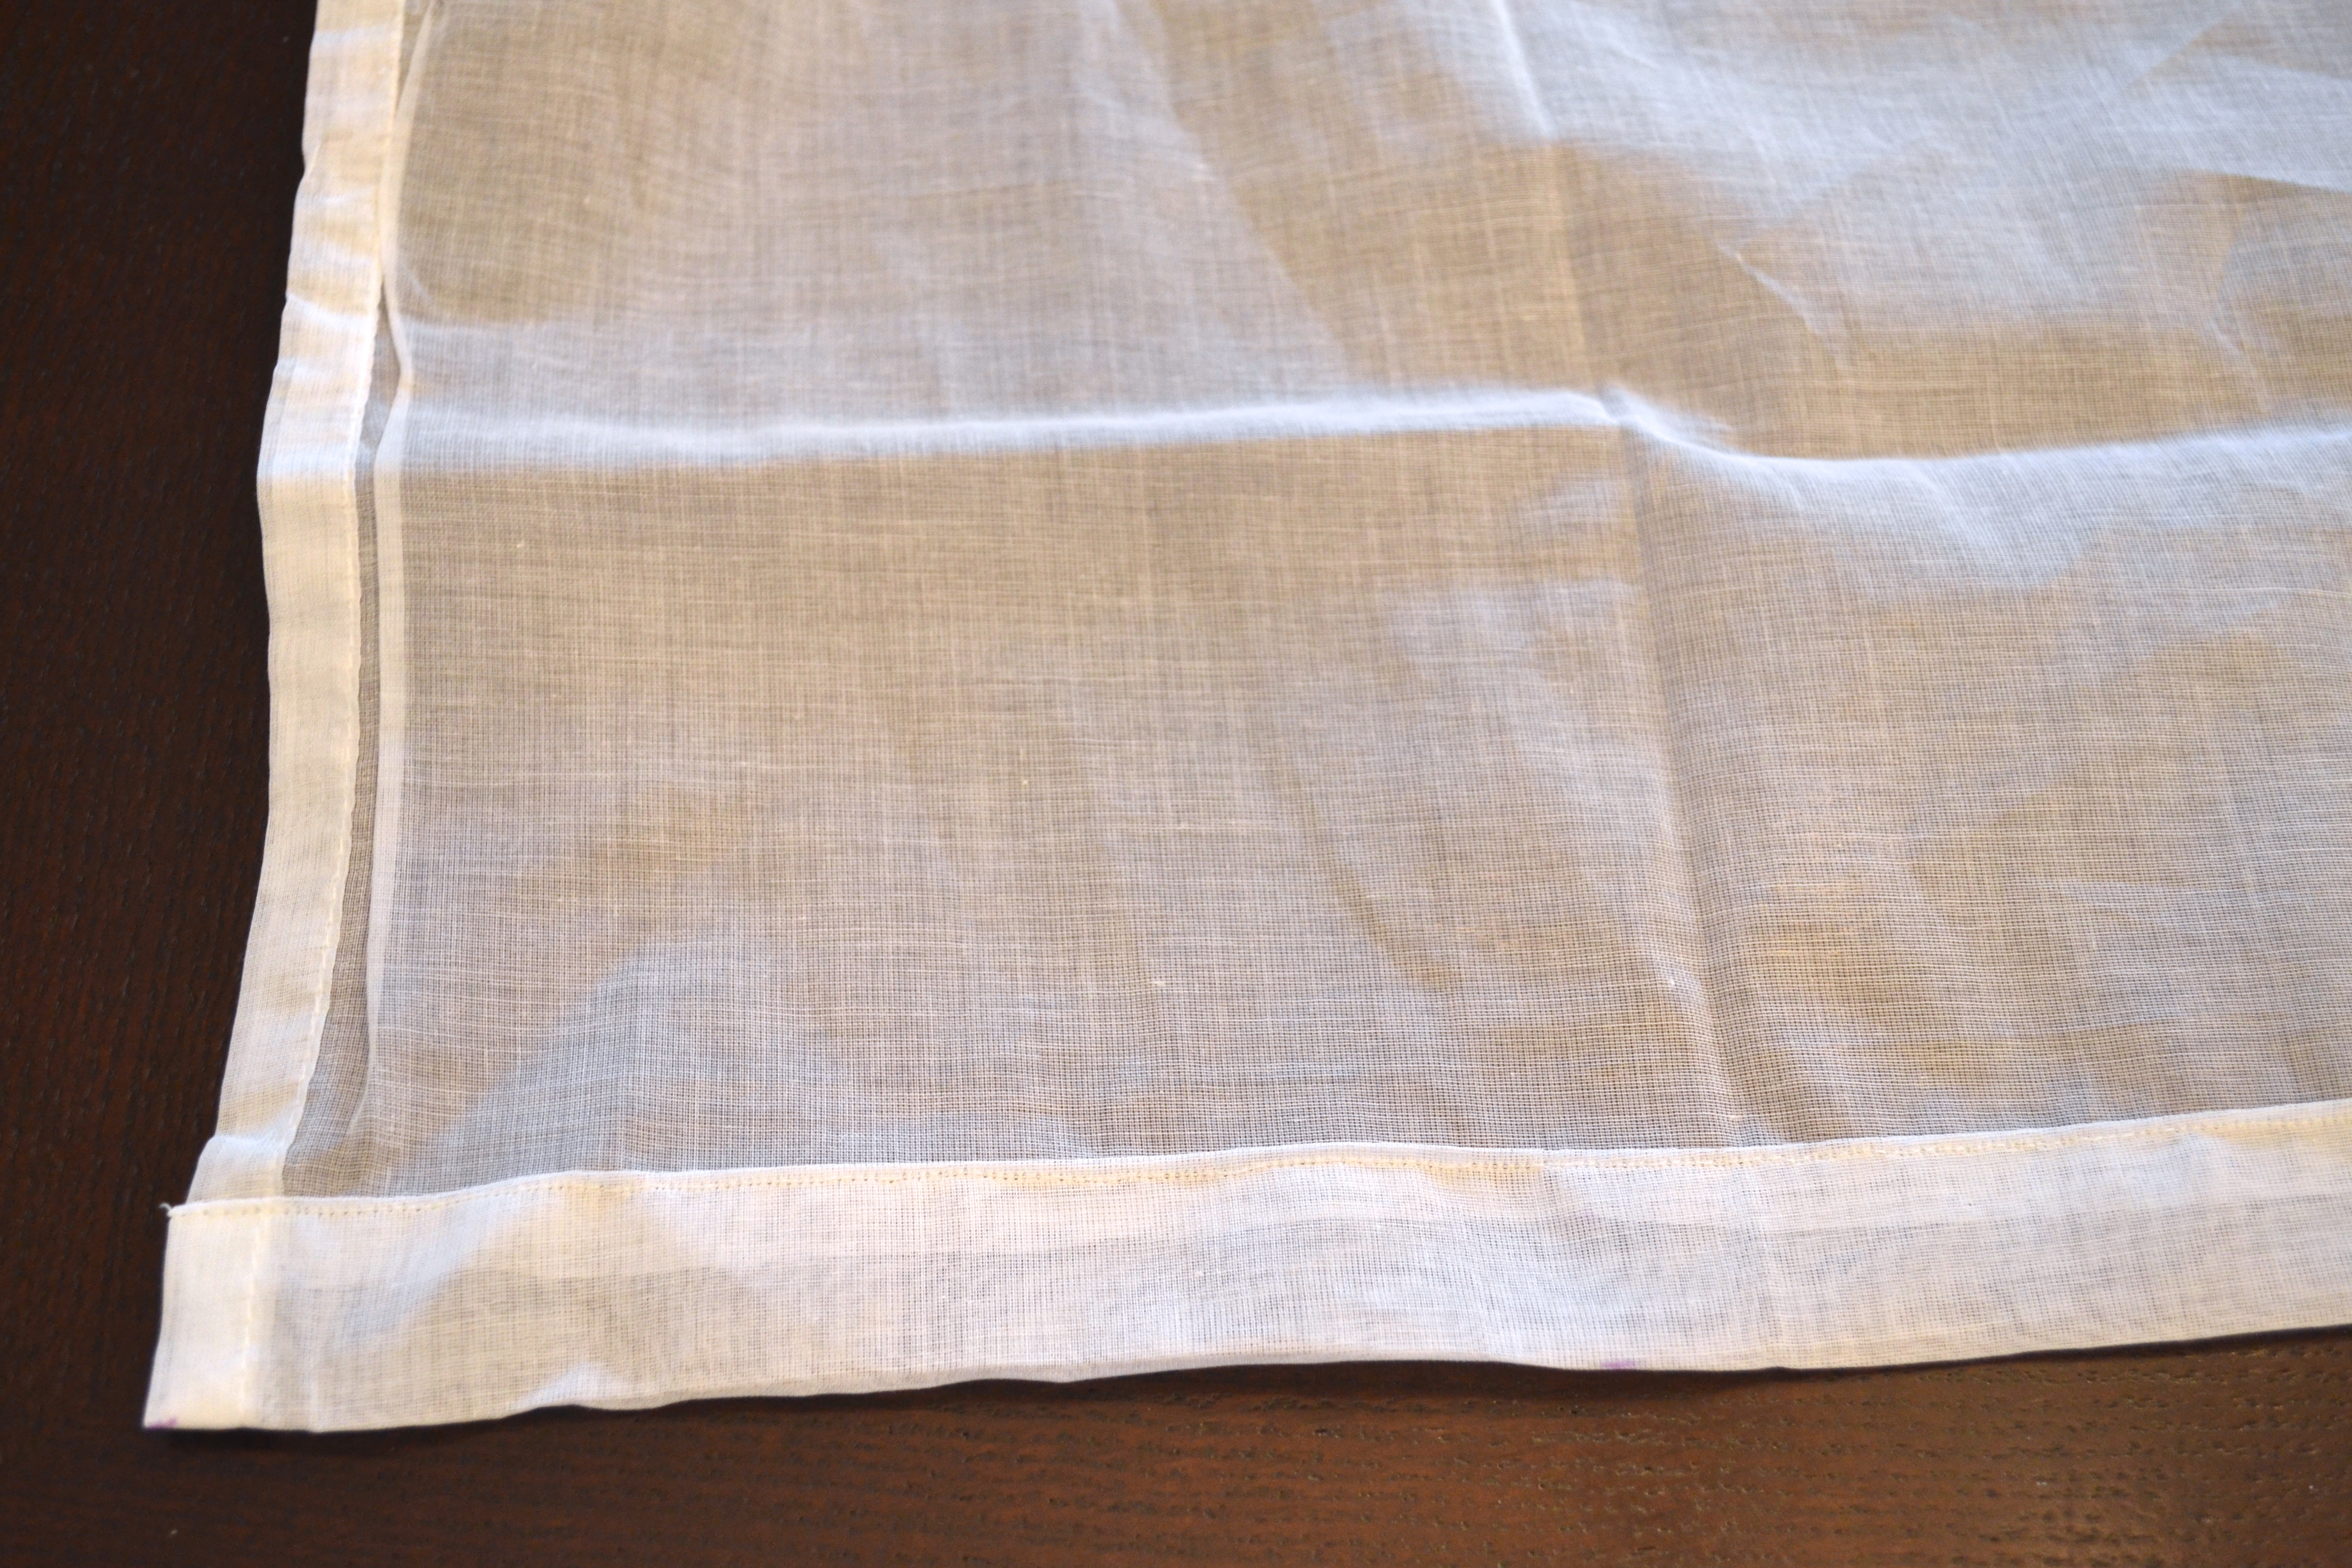 ow to hem curtains - How To Hem Curtains